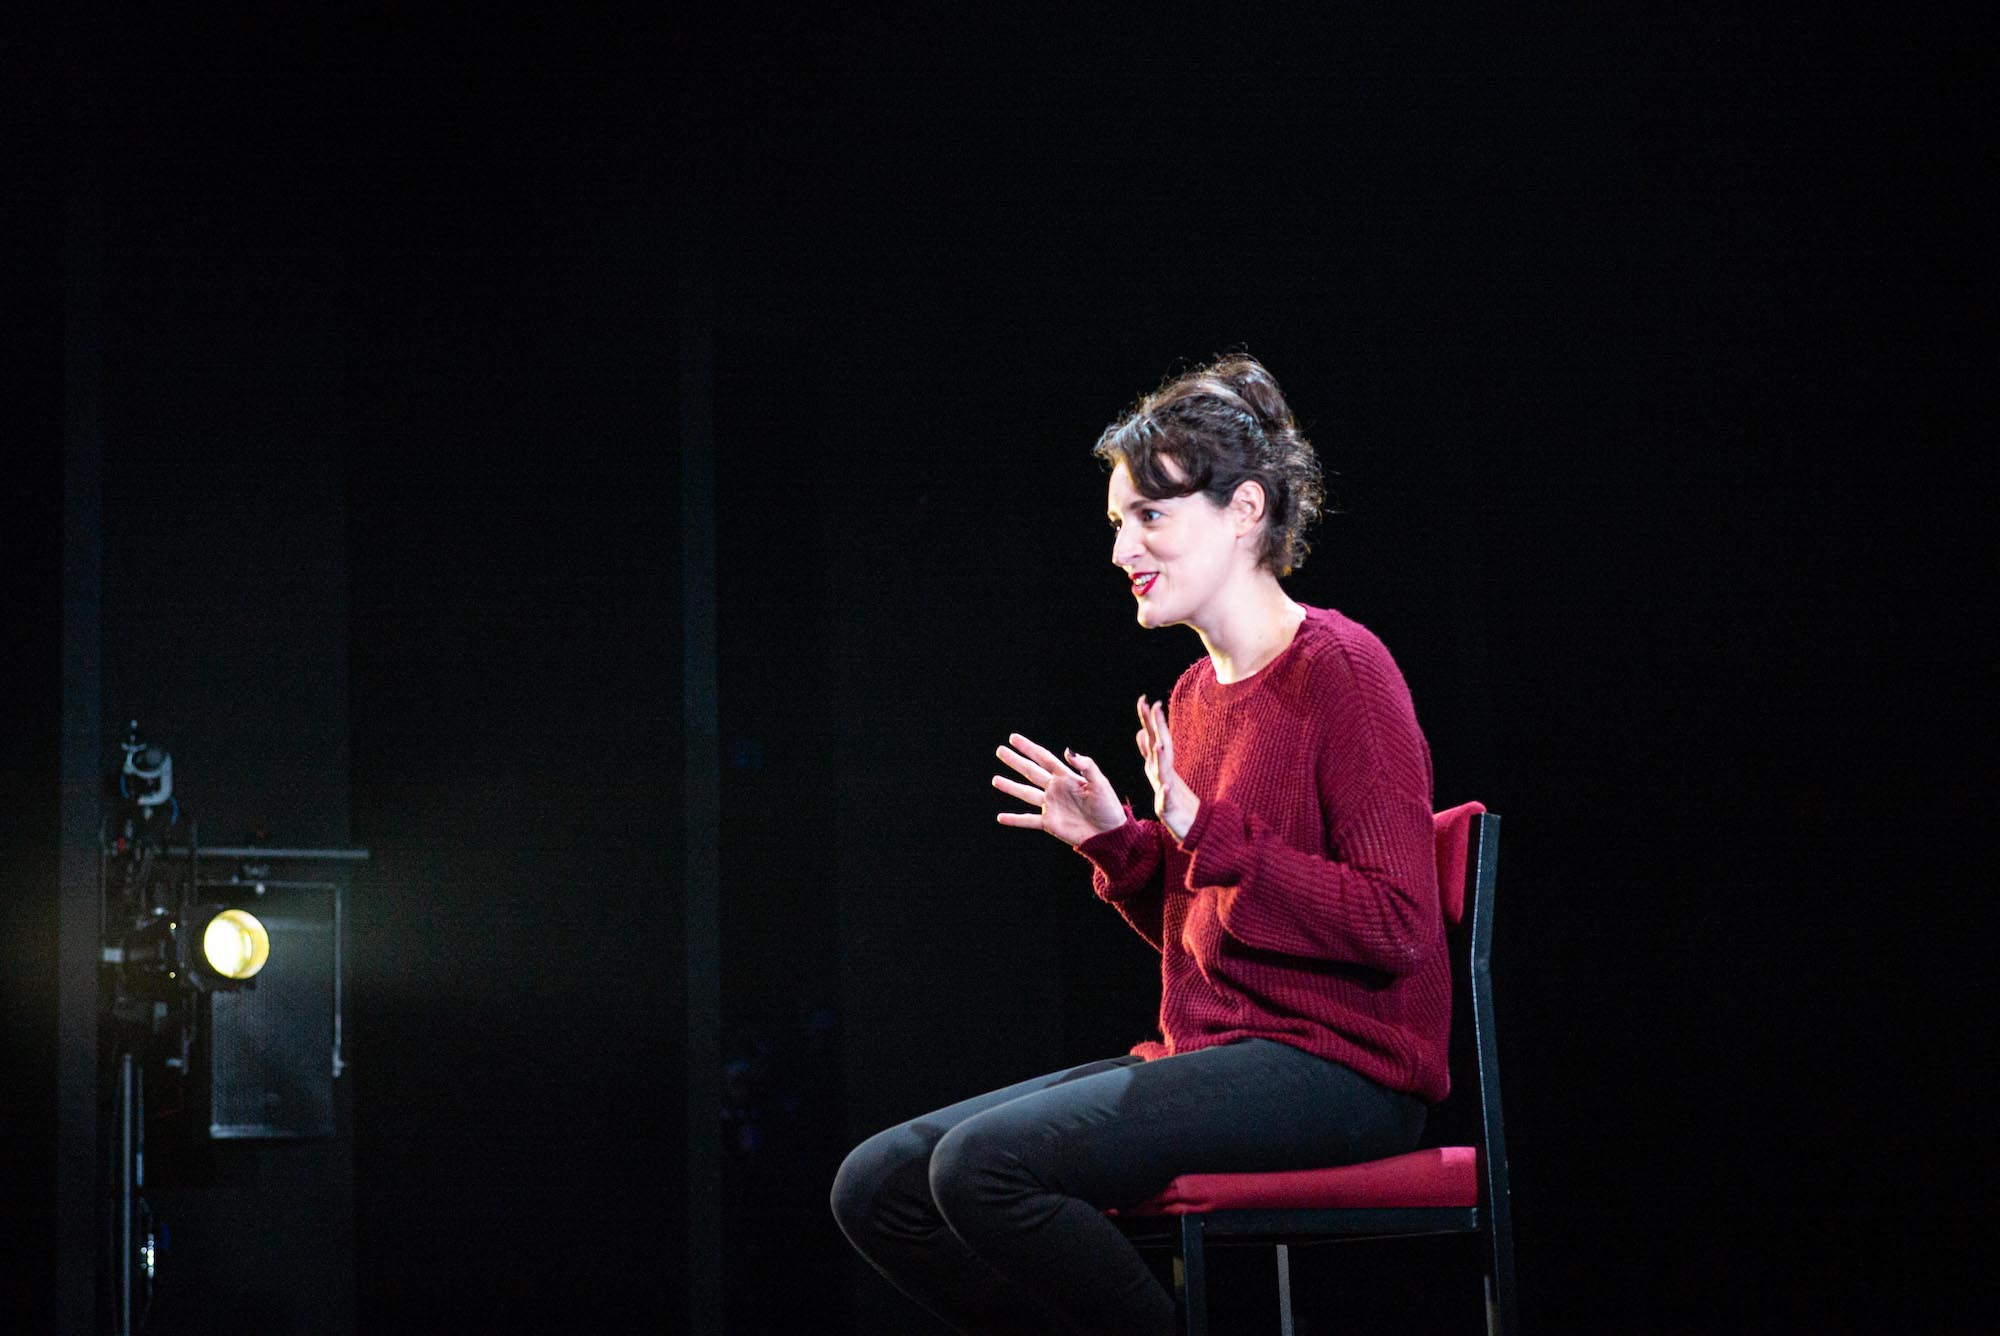 Phoebe Waller-Bridge in London theatre play of Fleabag looking to the side